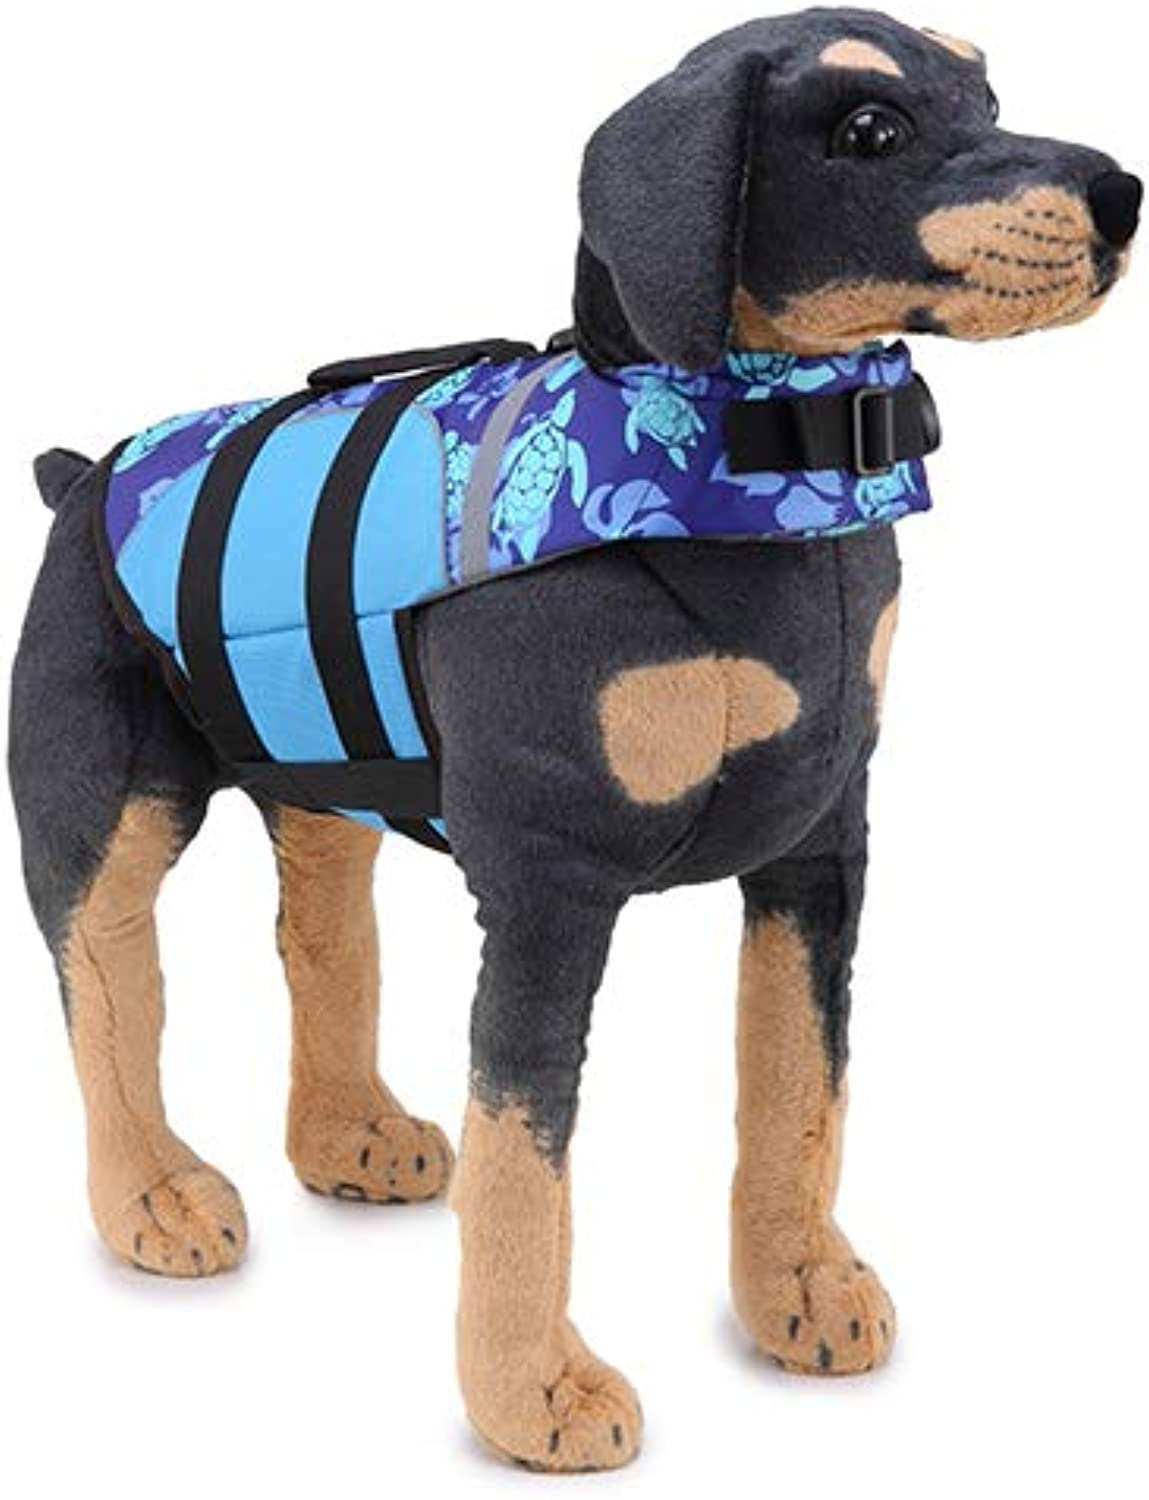 Pet Reflective Swimwear Pet Floating Vest Foldable Portable Life Jacket Suitable Swimming Pool, Beach, Boating Water Safety,S